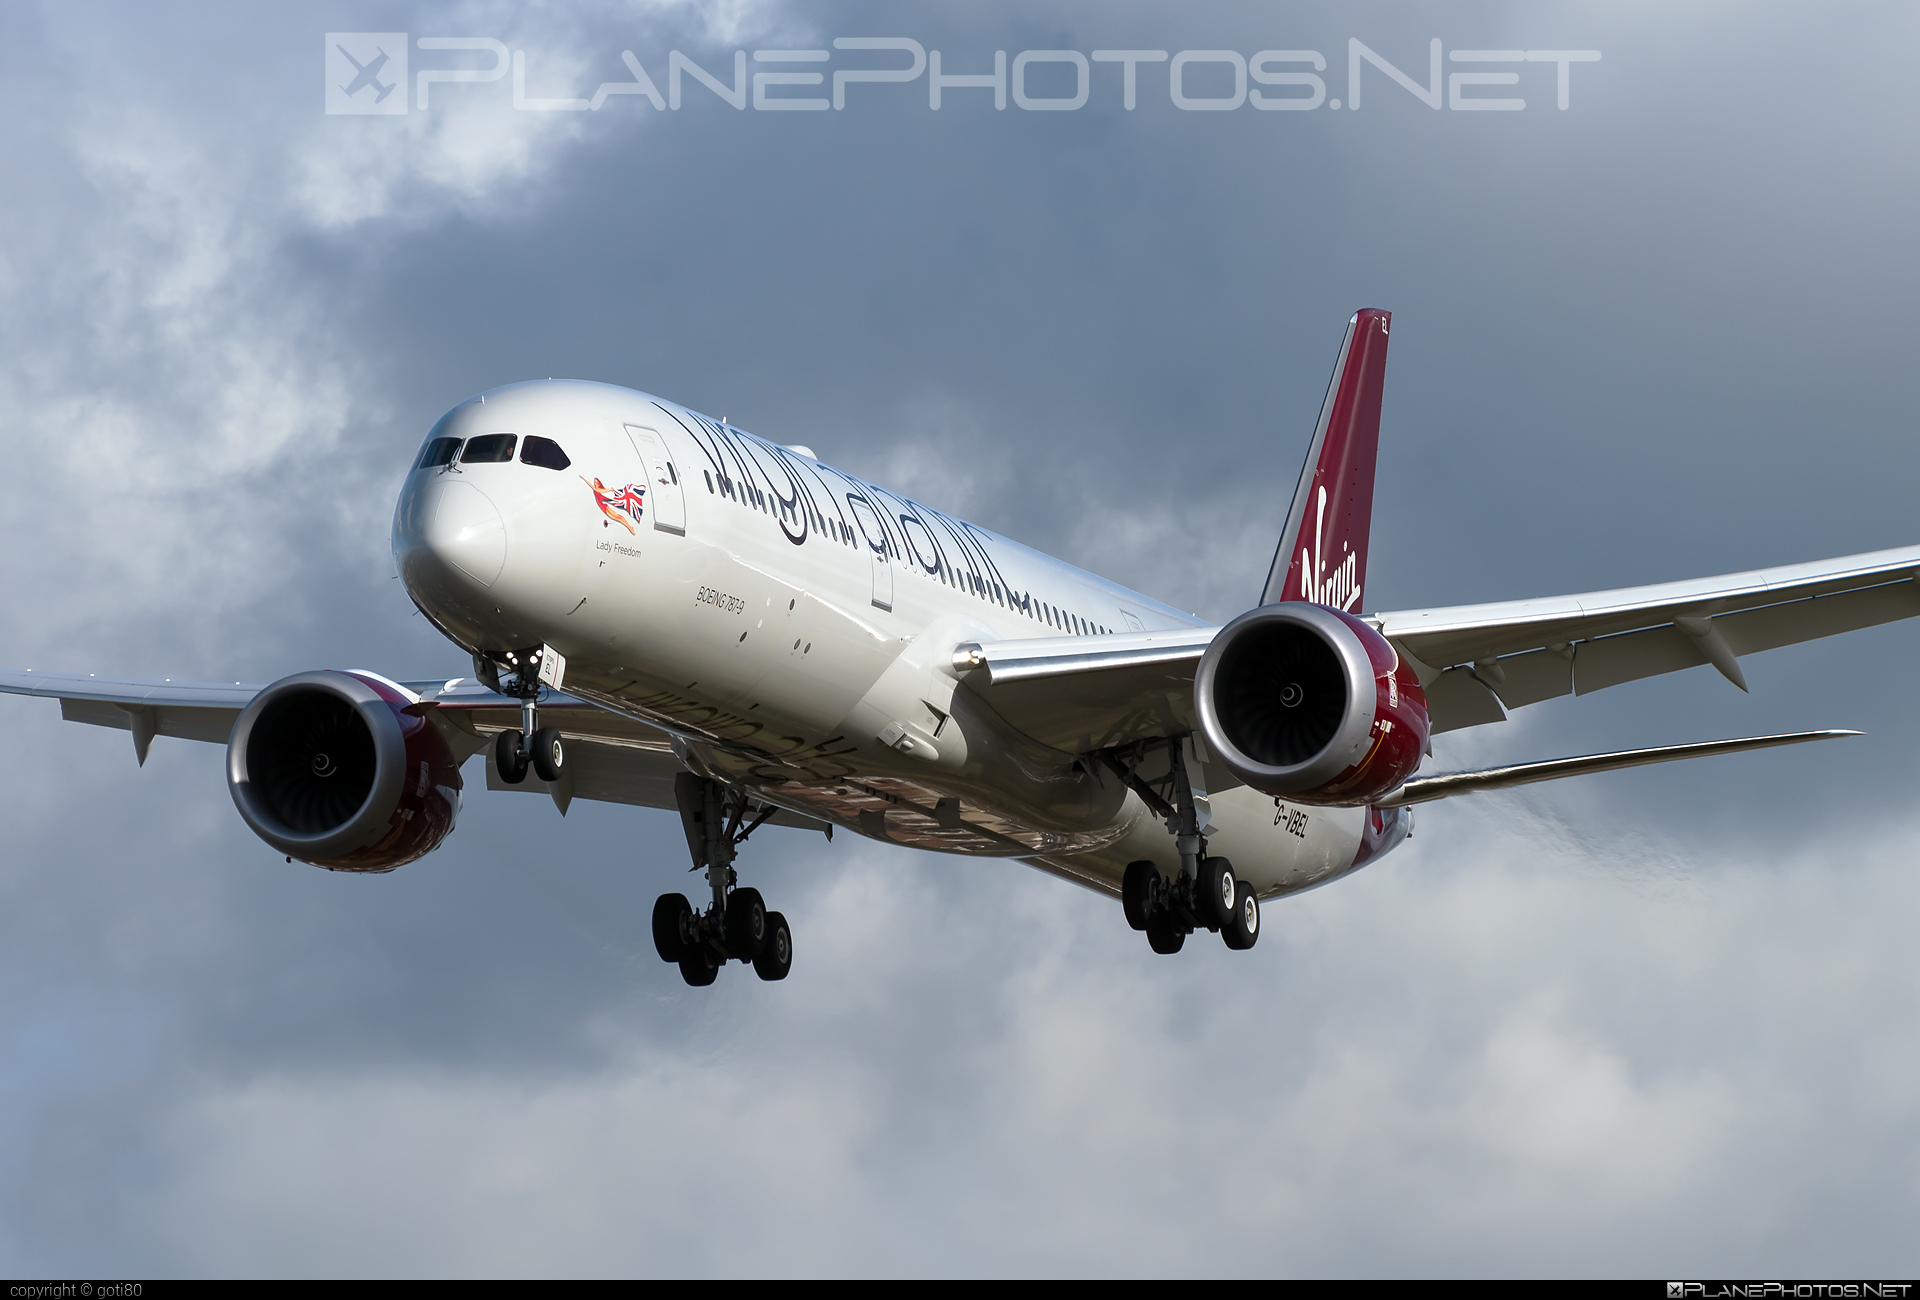 Boeing 787-9 Dreamliner - G-VBEL operated by Virgin Atlantic Airways #b787 #boeing #boeing787 #dreamliner #virginatlantic #virginatlanticairways